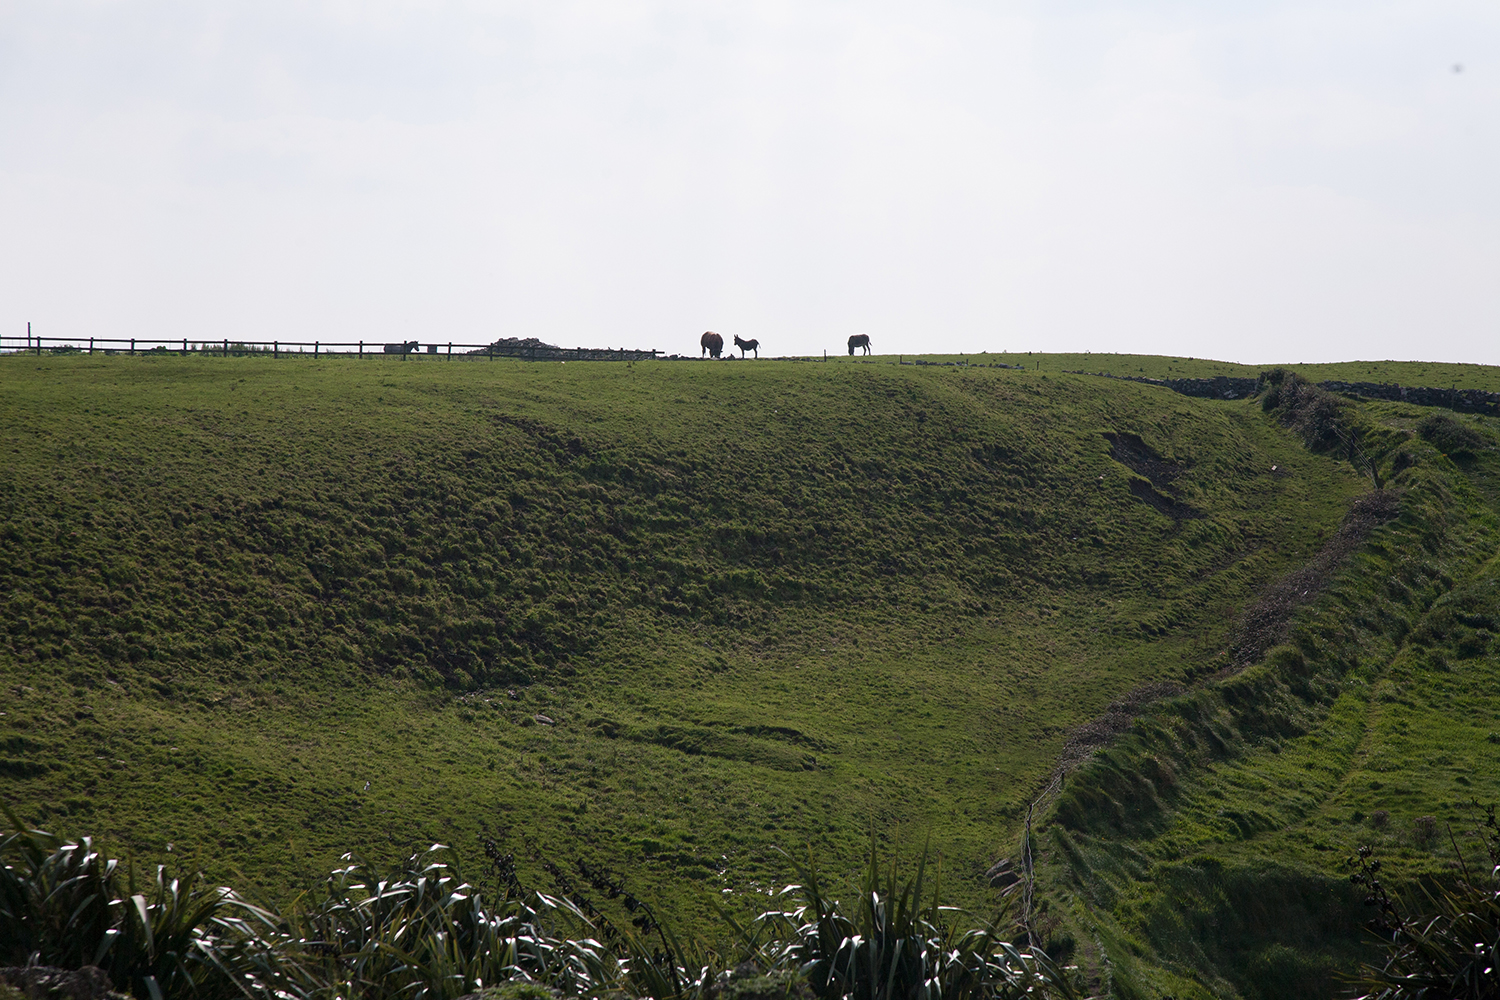 A documentary photograph of horses on a hilltop in the west of ireland